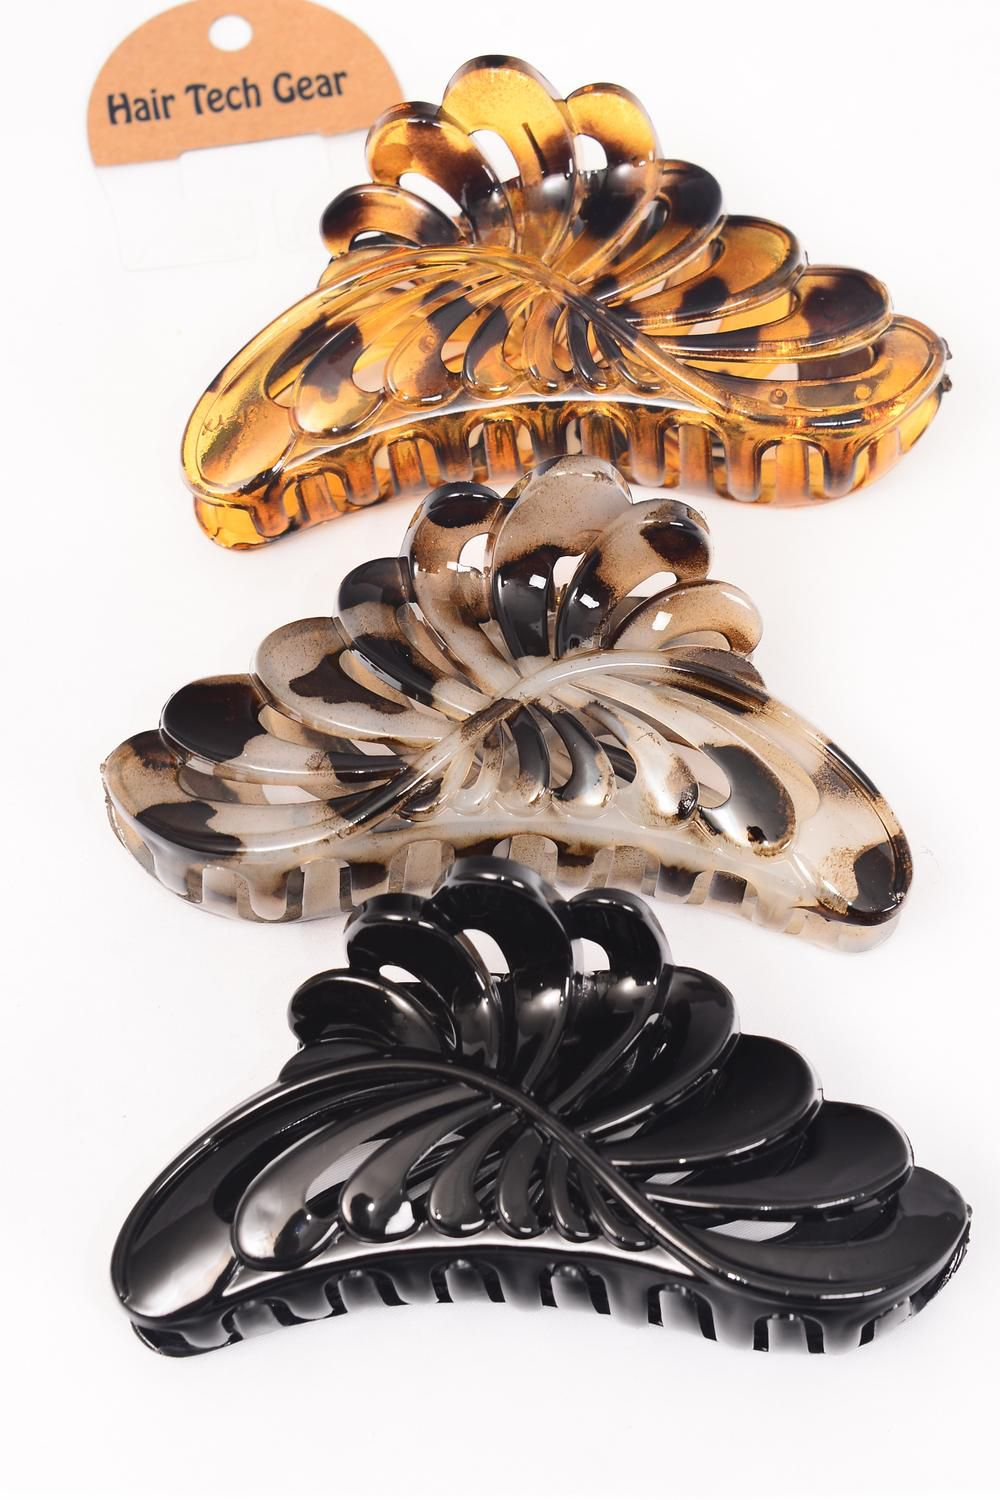 Jaw Clip Acrylic 14 cm Wide Leaf  Black & Tortoise Leopard Mix/DZ Size-14 cm Wide,4 Black & 4 Tortoise & 4 Leorpard Mix,Hang Tag & OPP bag & UPC Code